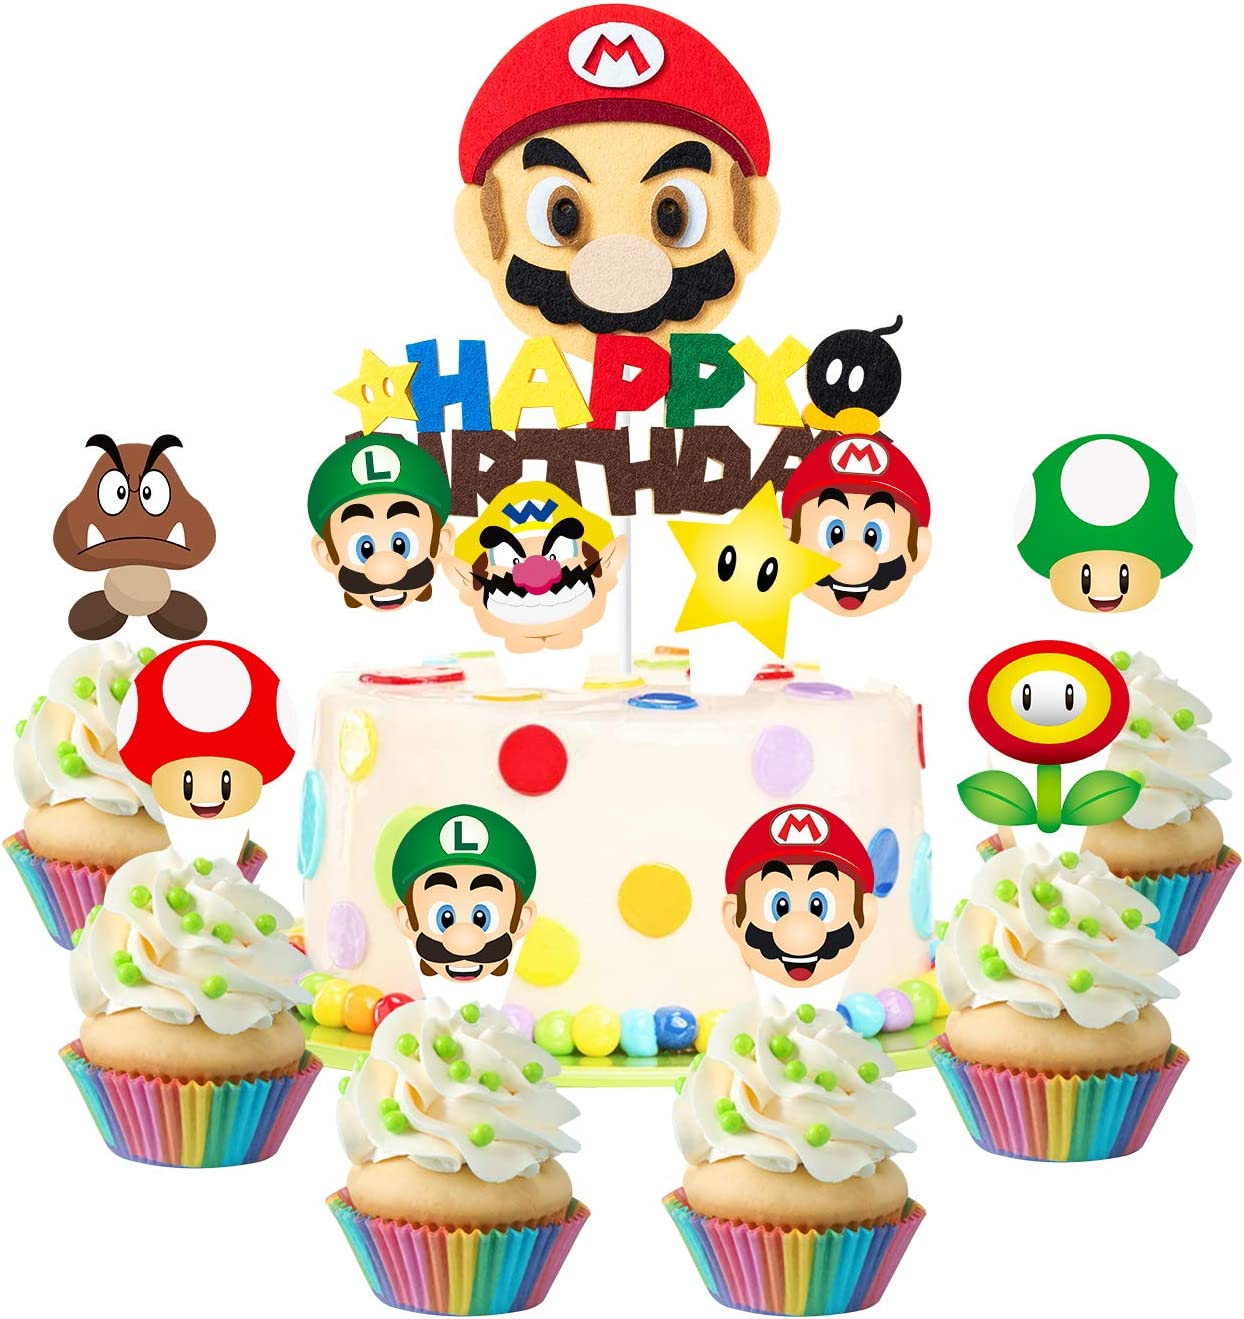 49Pcs Mario Brothers Cake Toppers, Wario Themed Party Cake Decorations, Happy Birthday Cake Topper and Cardstock, Luigi Cupcake Toppers, Kids Birthday Decoration Baby Shower Party Supplies